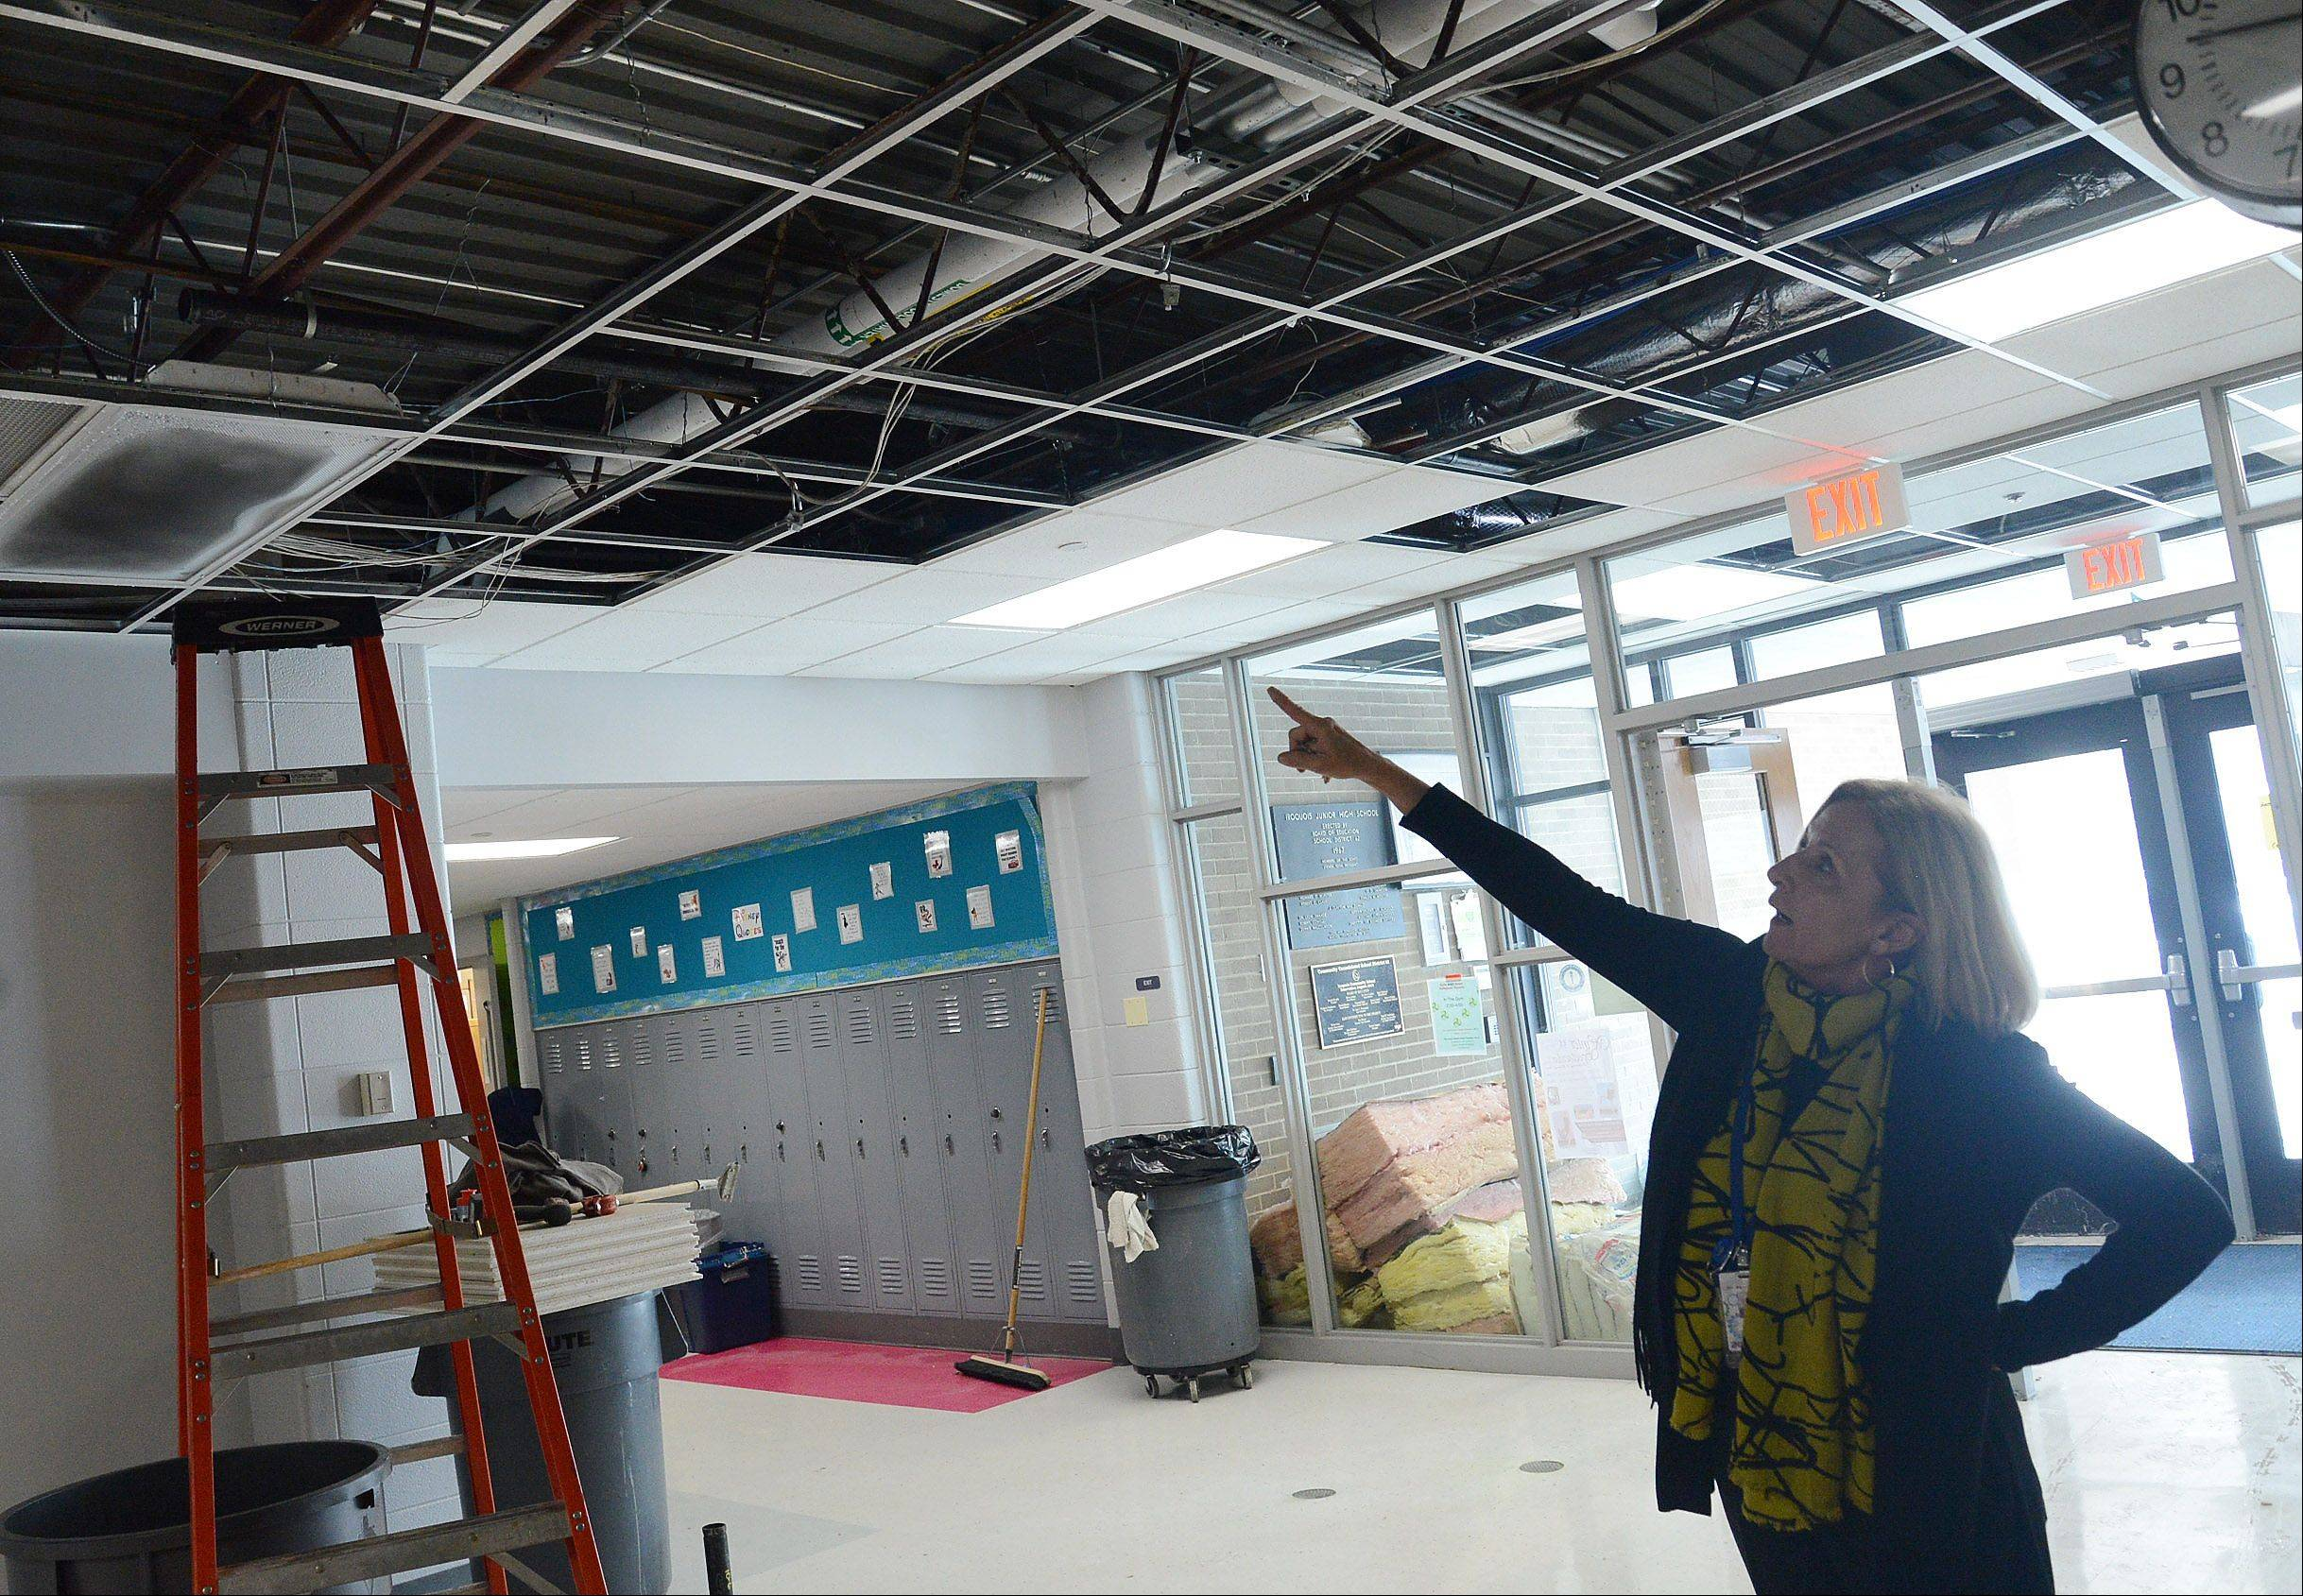 Des Plaines School District 62 Superintendent Jane Westerhold points to where a sprinkler system pipe burst earlier Wednesday at Iroquois Community School, forcing the abrupt cancellation of classes for the remainder of the day as well as Thursday. Officials blamed the pipe break on the recent spell of frigid weather.